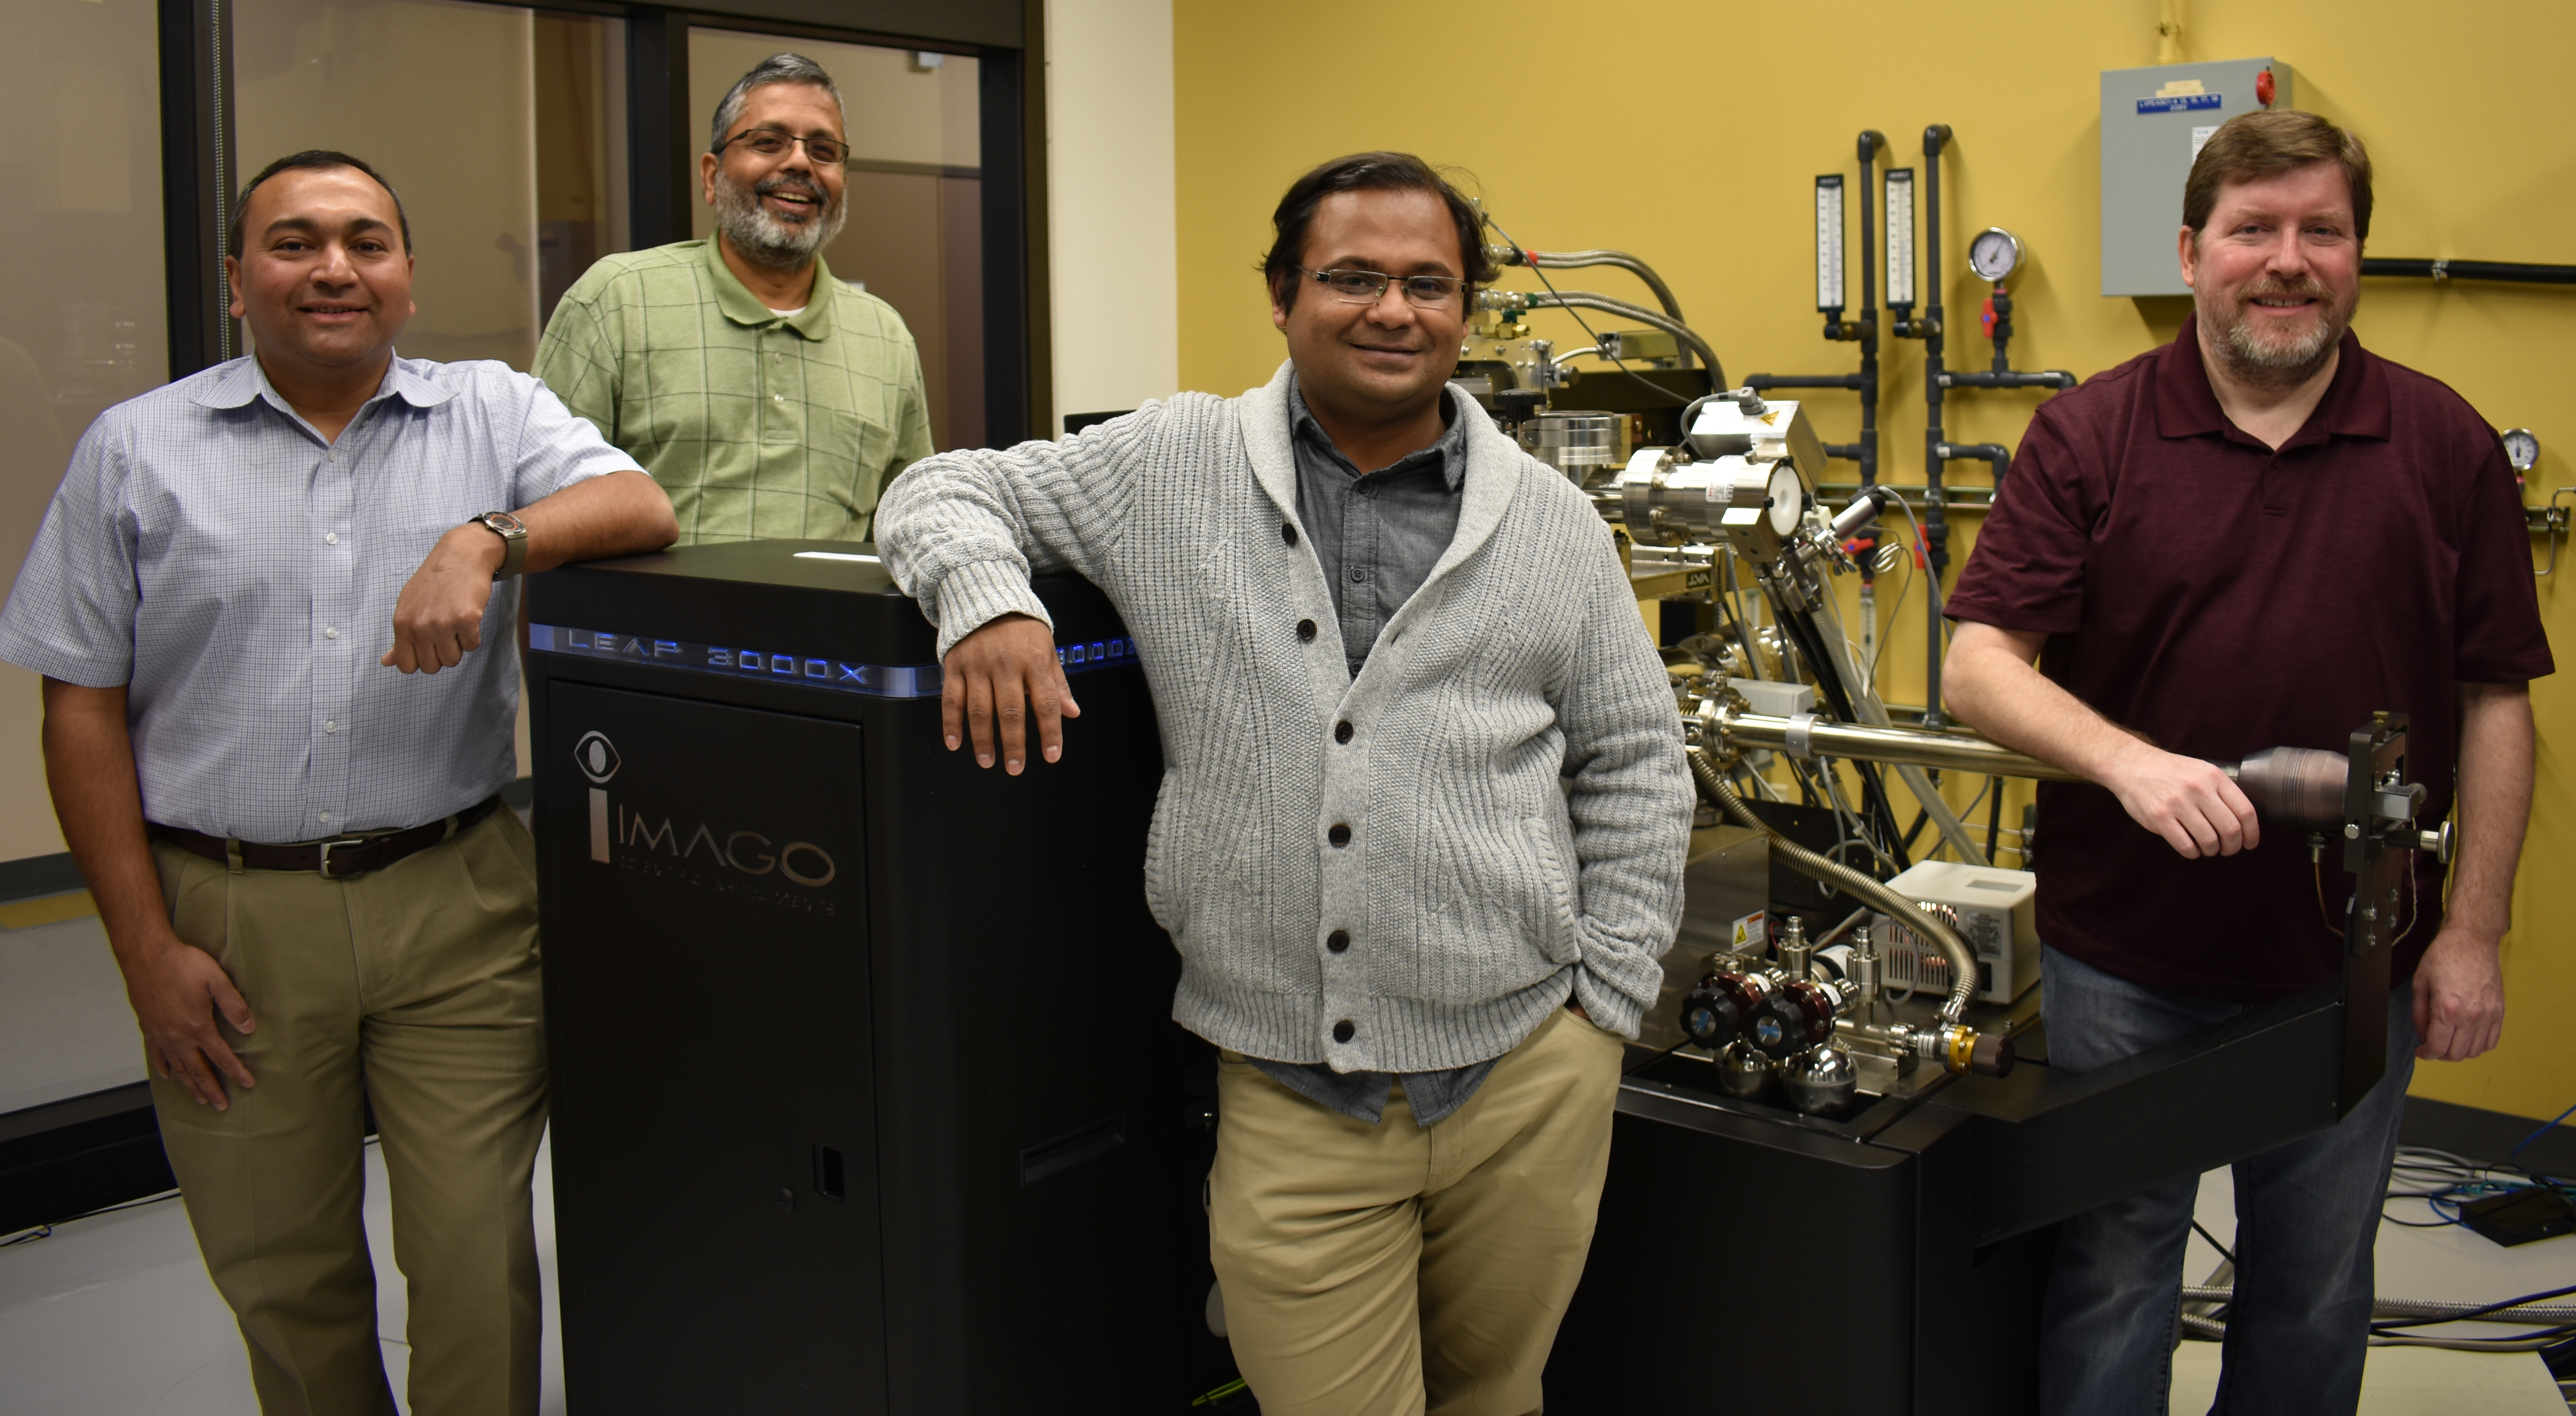 Researchers in the University of North Texas College of Engineering have found a way to create an ultralight, high heat-resistant, magnesium-based material by engineering bonds at an atomic level.